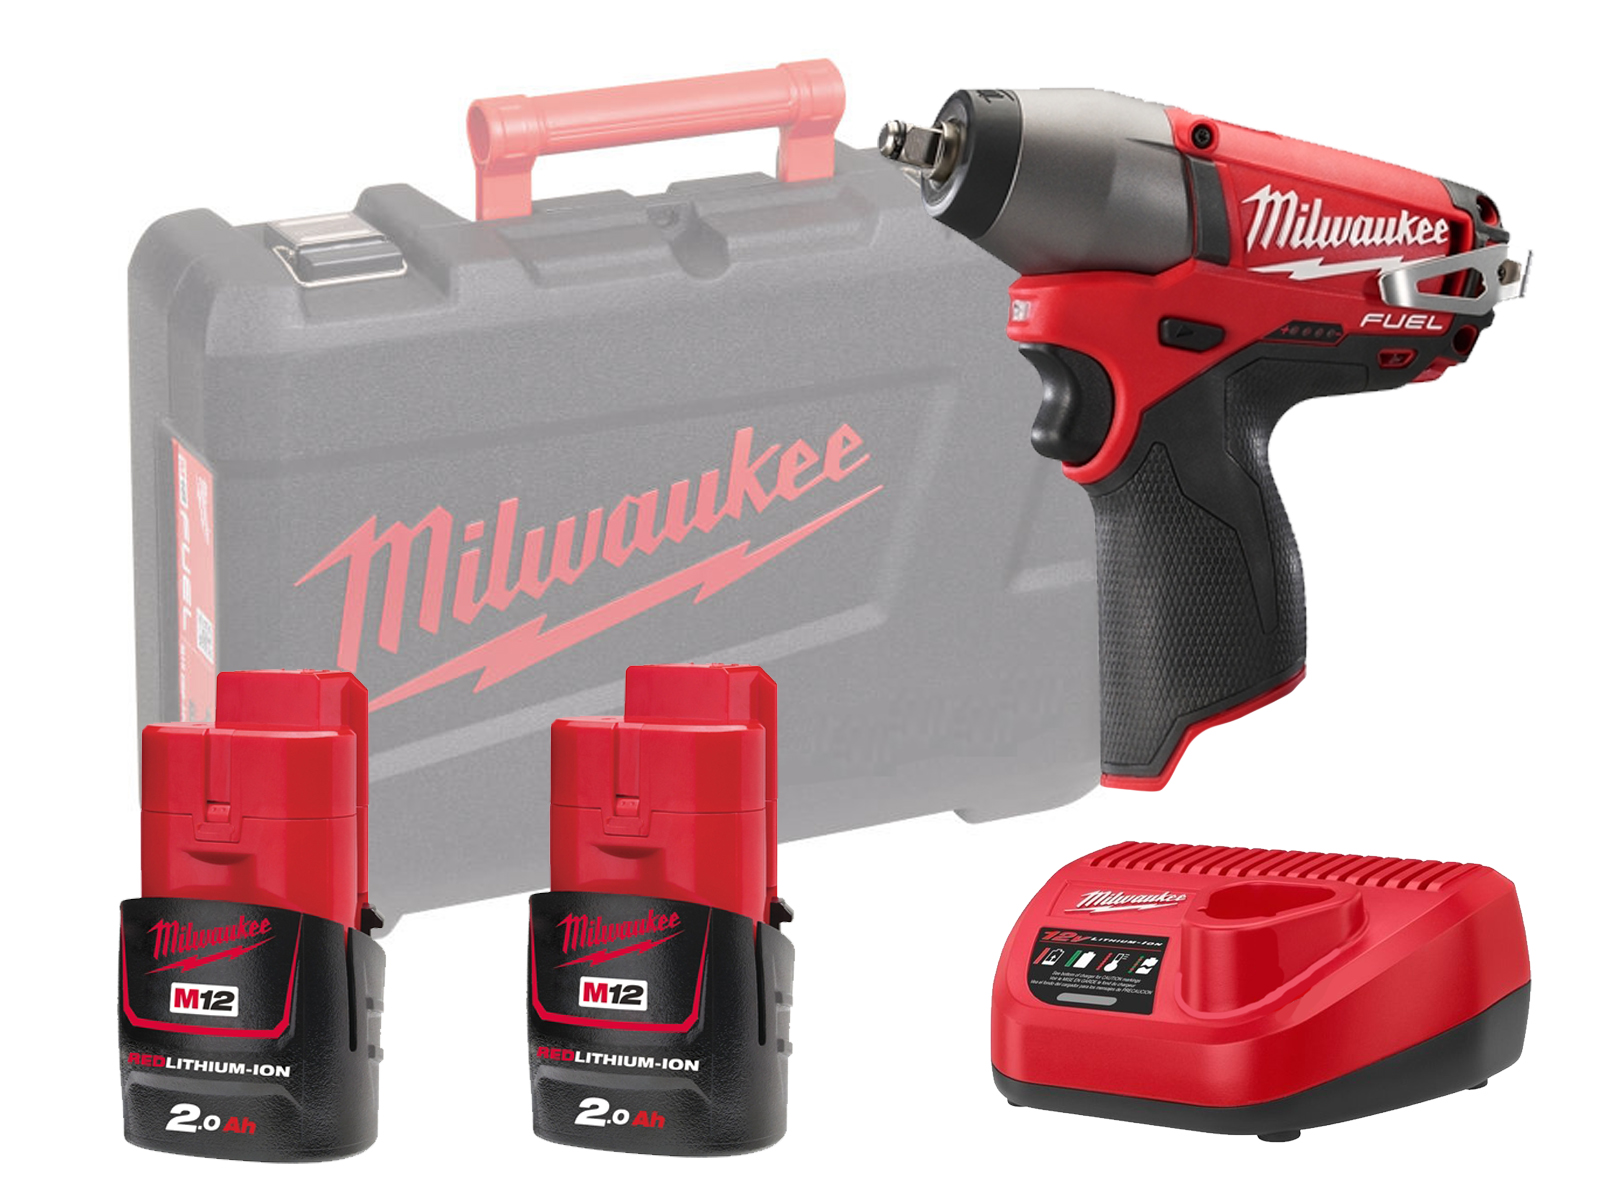 "MILWAUKEE 12V FUEL IMPACT WRENCH 1/2"" - M12CIW12 - 2.0AH PACK"